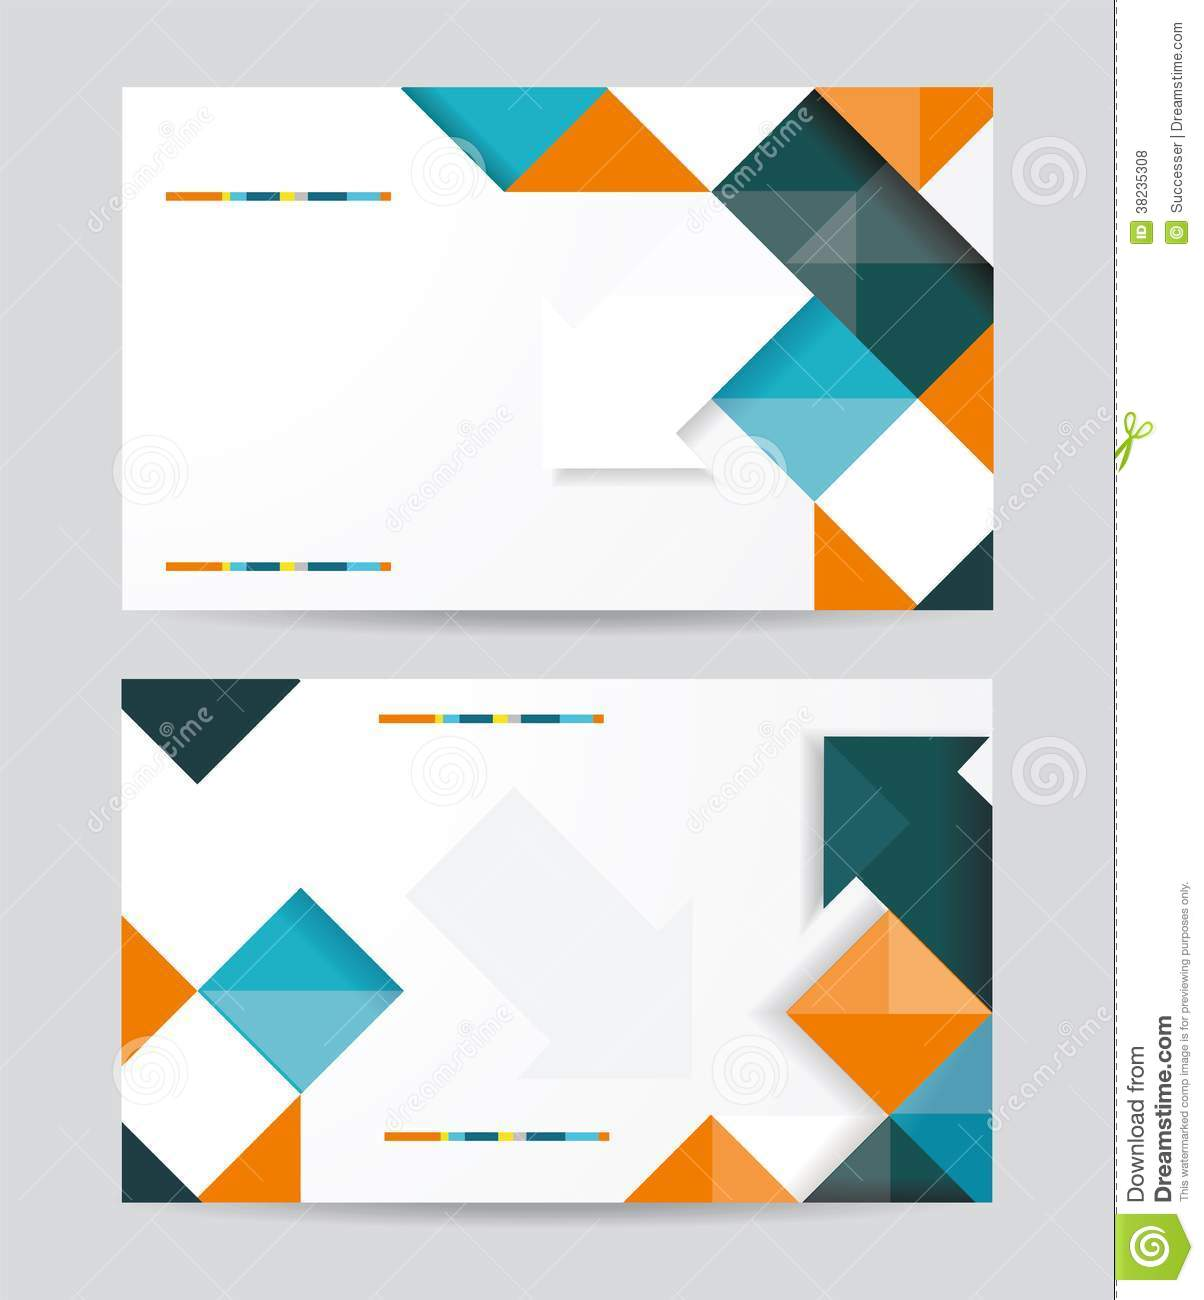 Vector Template Design With Cubes And Arrows Eleme Royalty Free Stock ...